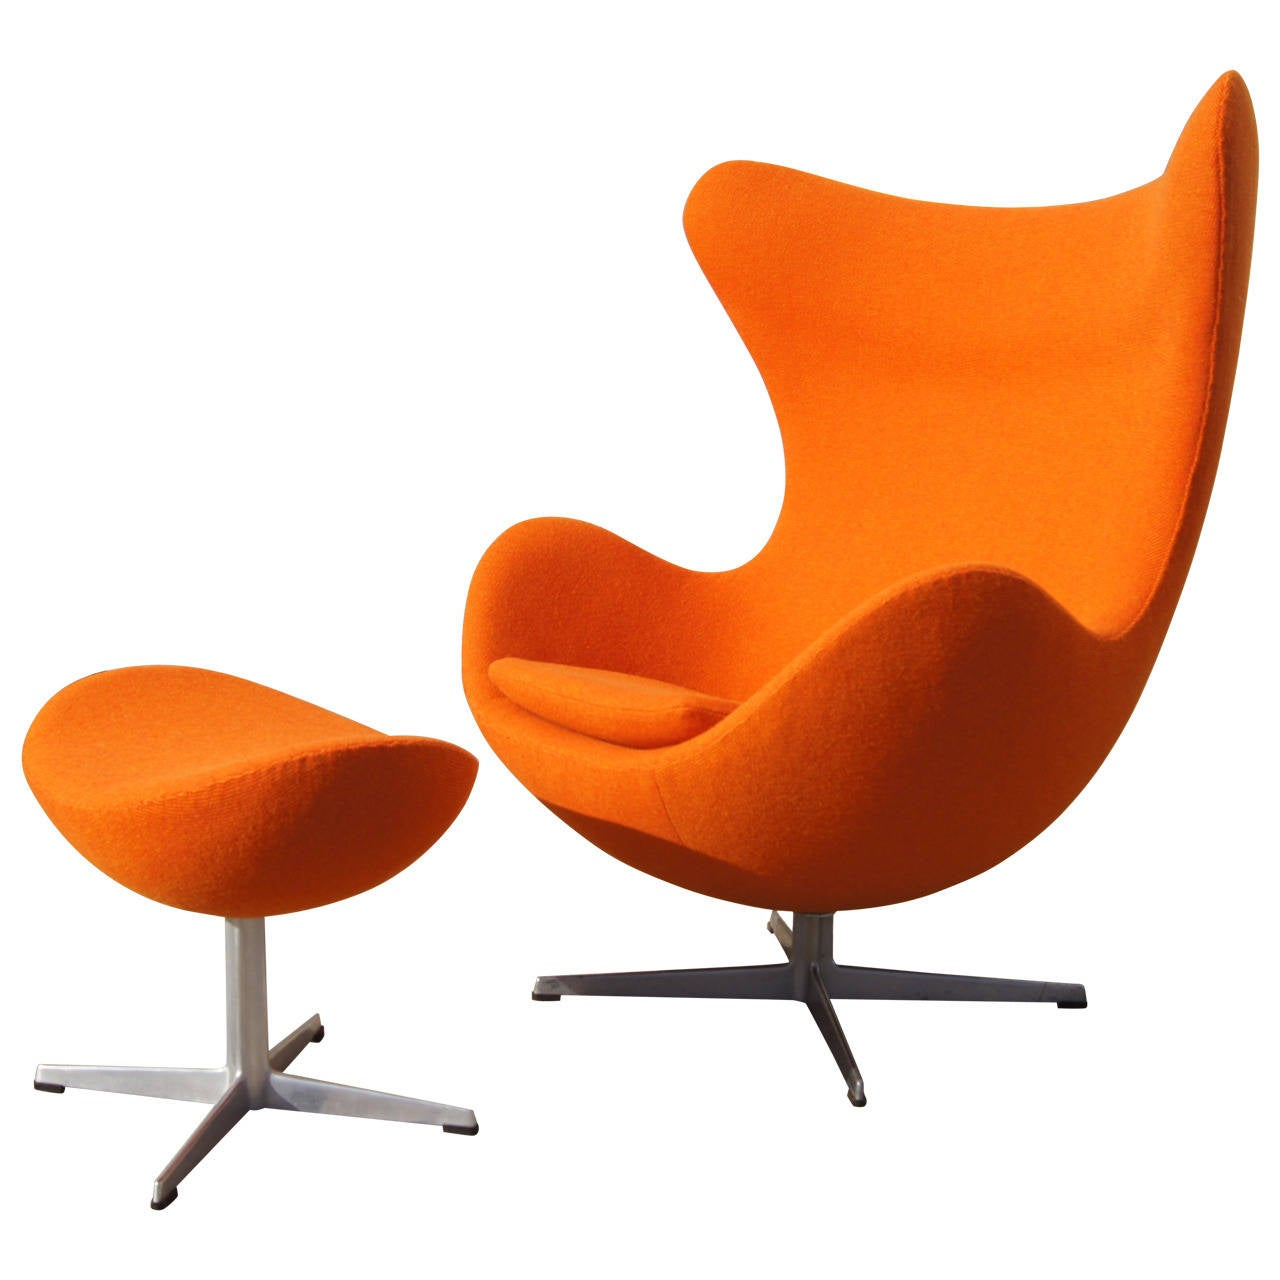 Chair Egg Early Egg Chair And Ottoman By Arne Jacobsen At 1stdibs